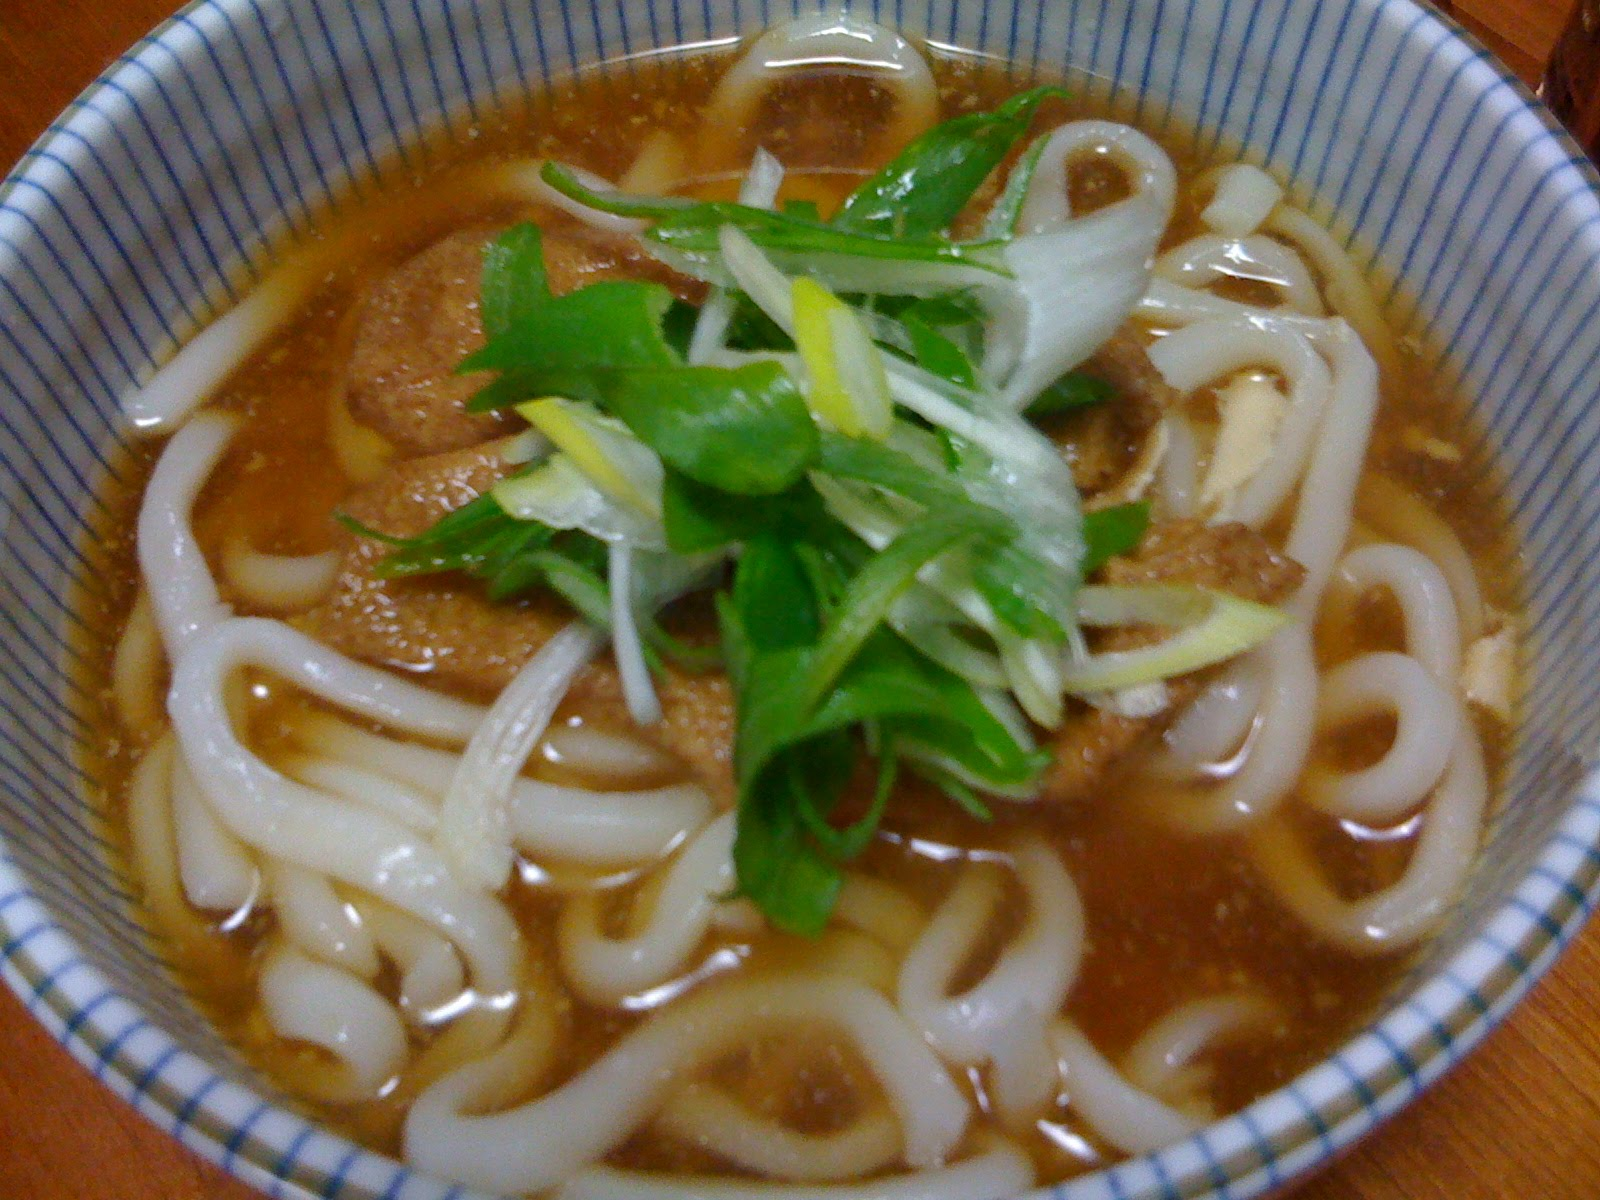 best udon noodles in los angeles cbs los angeles curry udon noodles ...